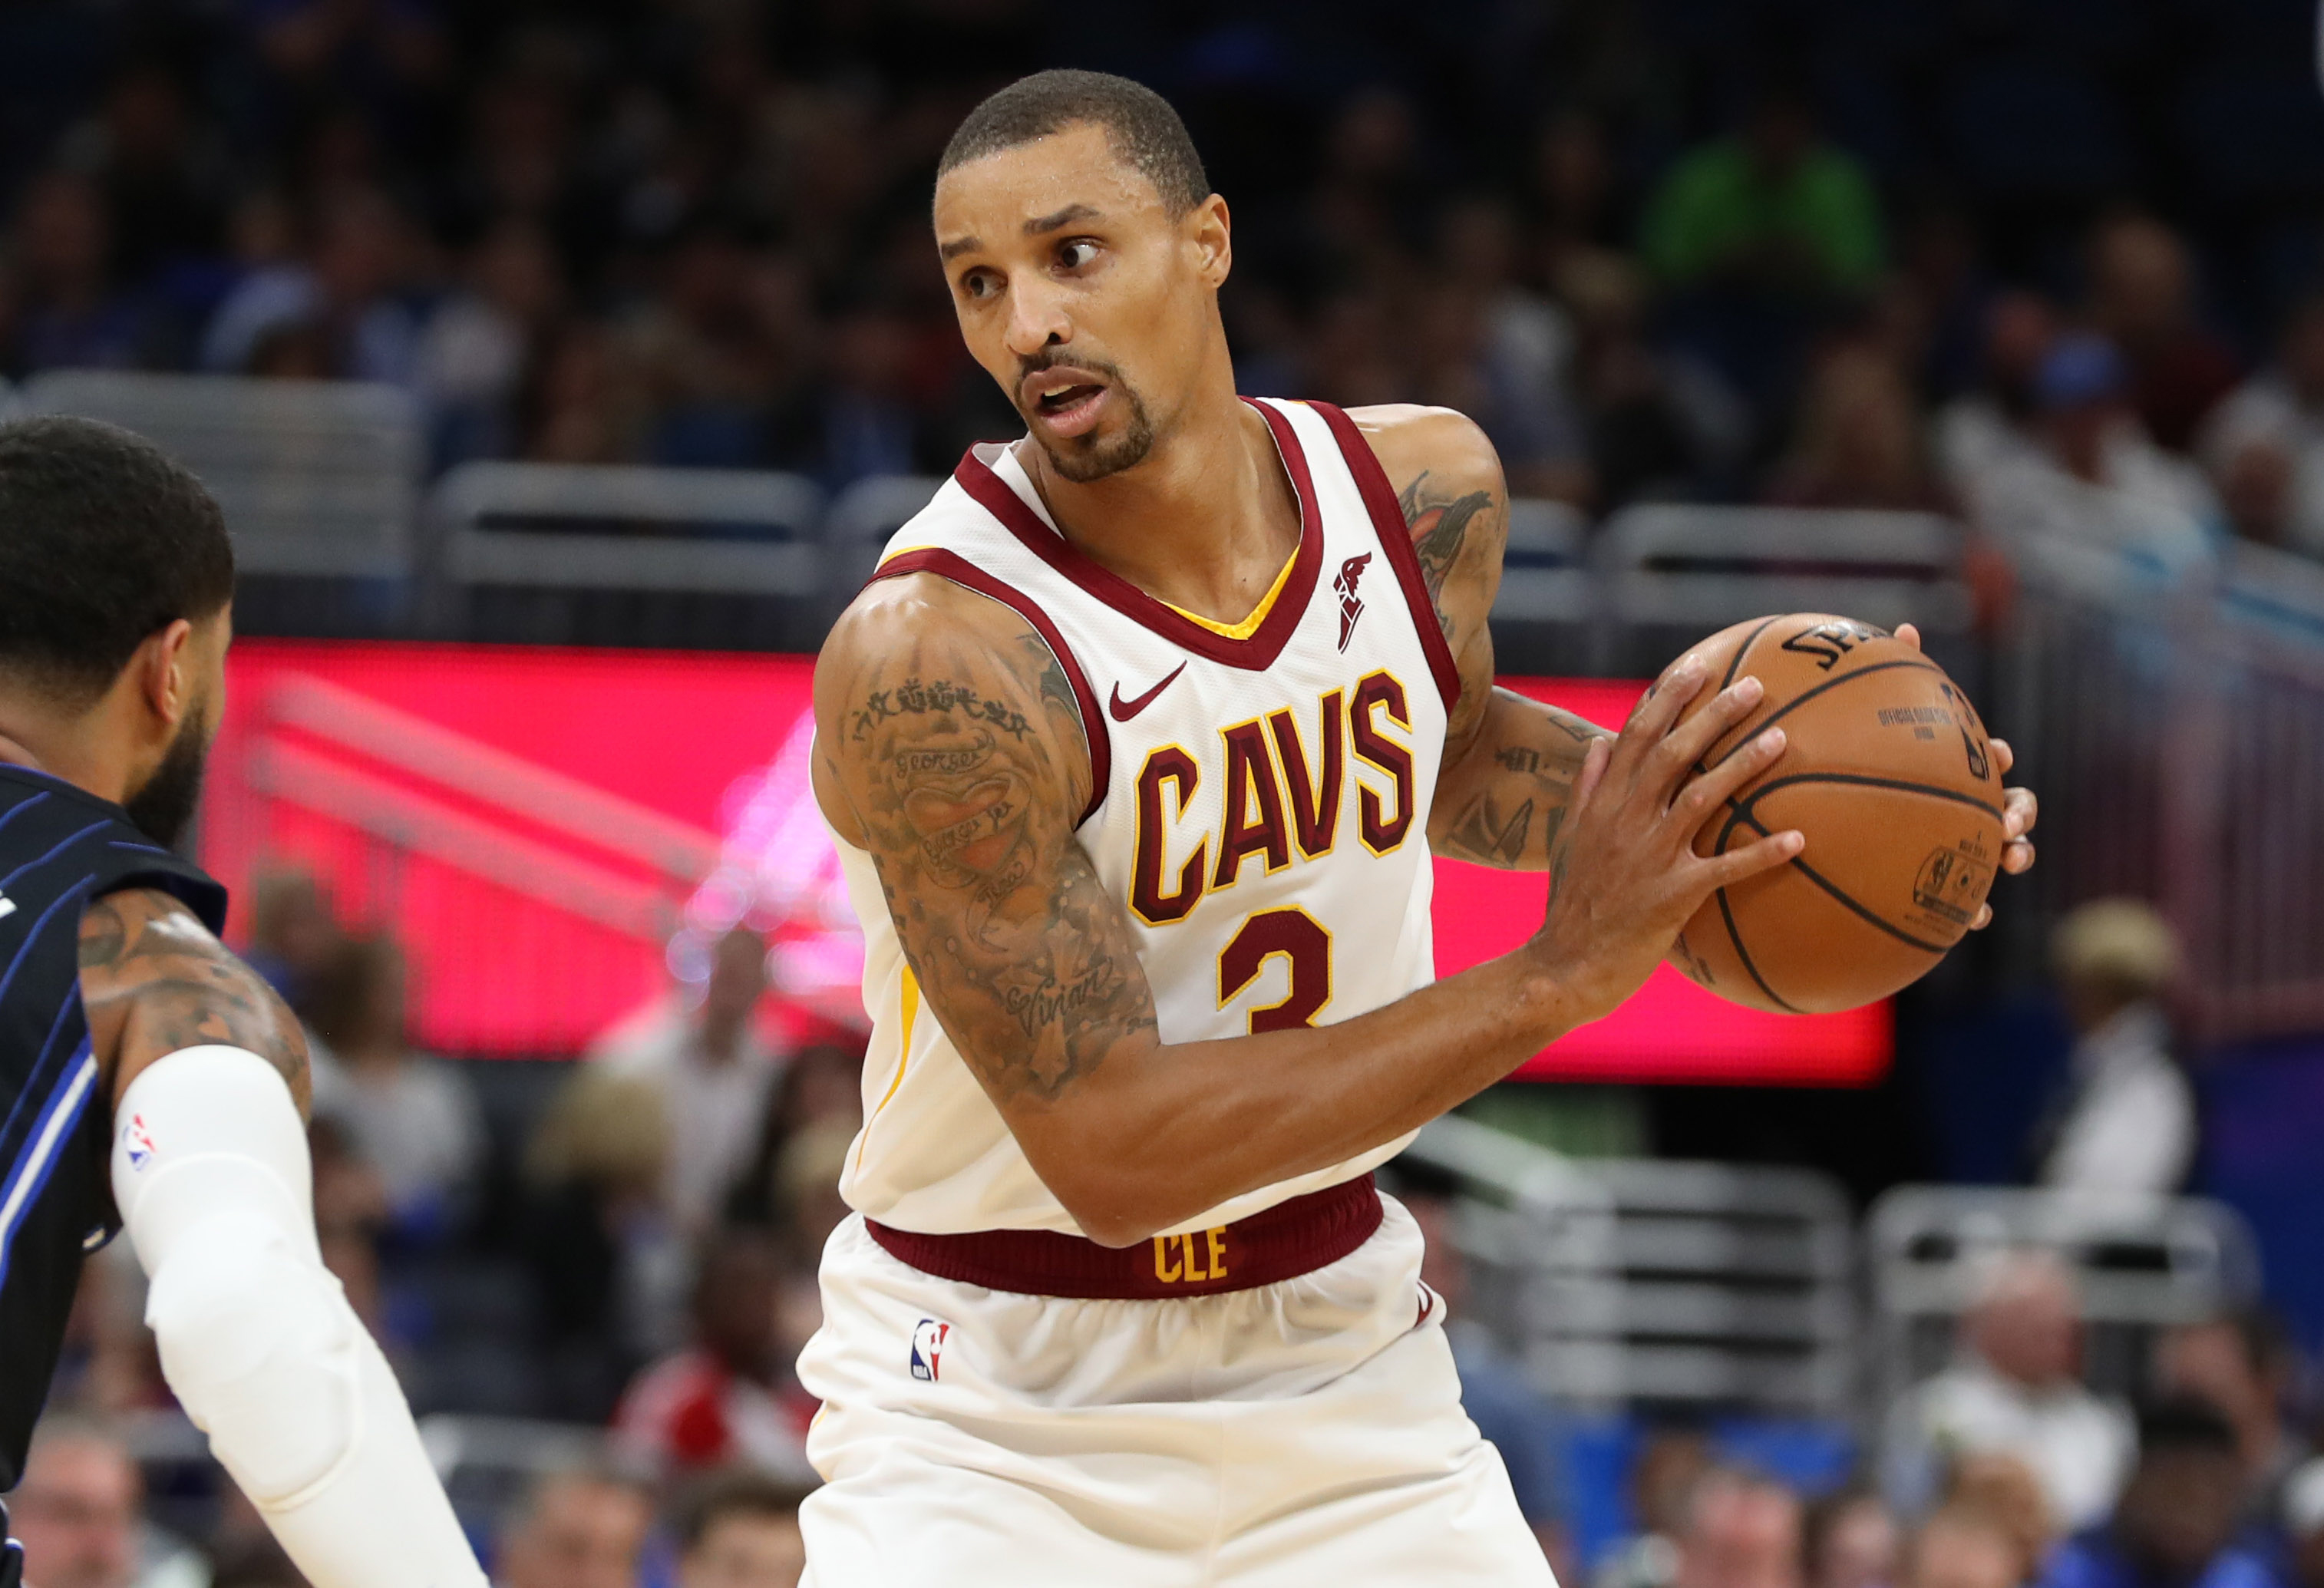 George Hill trade to the Bucks benefits everyone, including the Cavs and Wizards